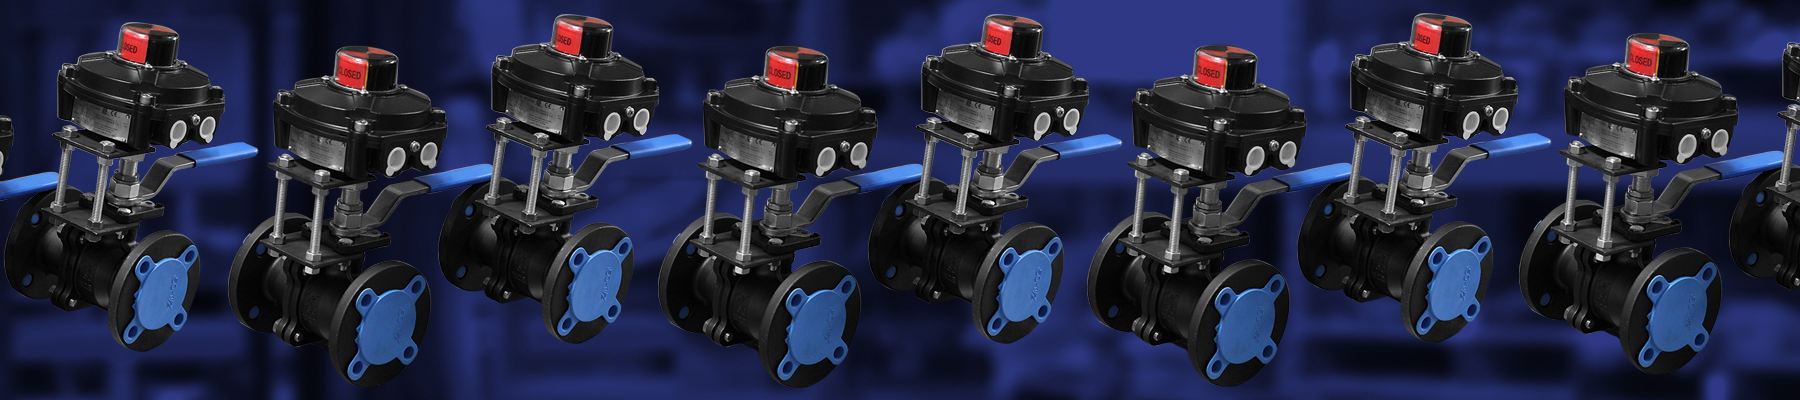 Manual Ball Valves w/ XP Limit Switches